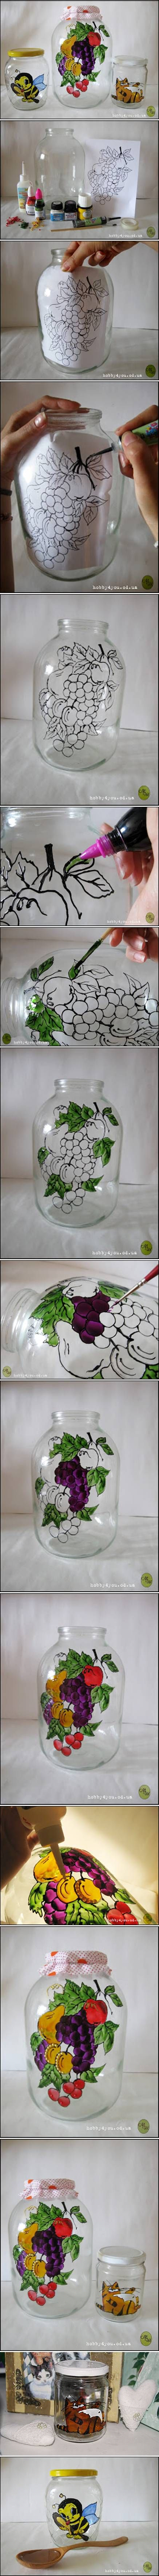 DIY Jar glass Painting Decor